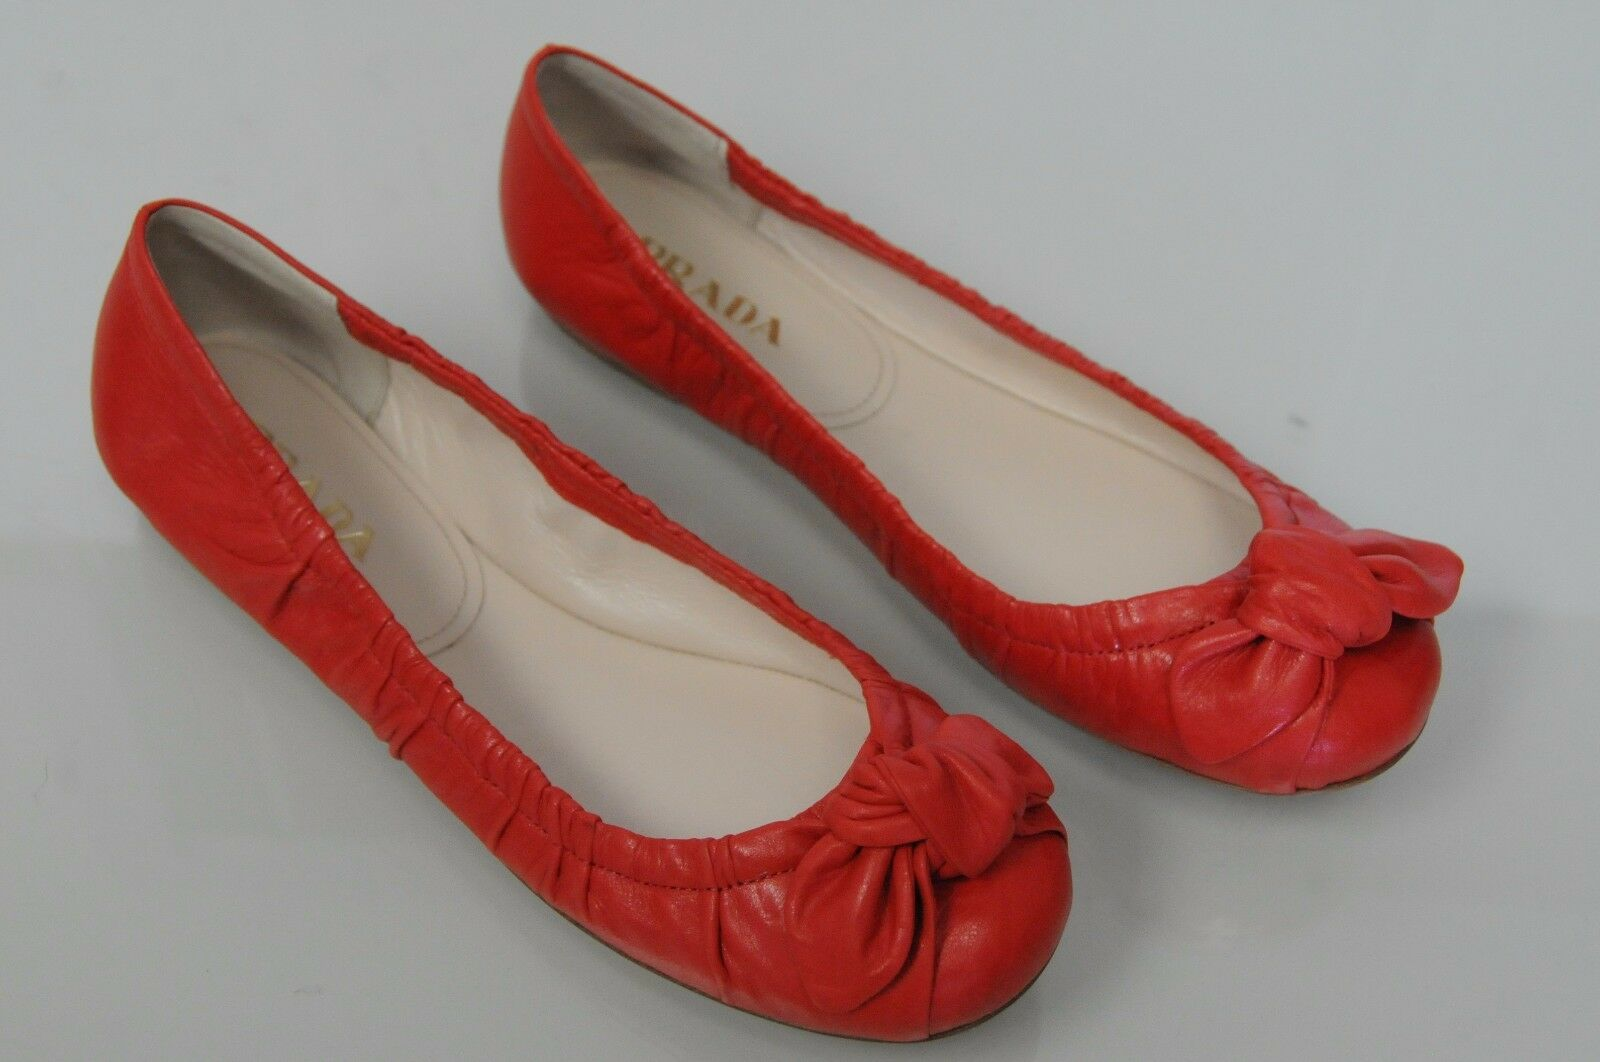 New PRADA Flats Red Red Red SOFTEEST Leather Ballet Flats Antic Soft Lacca Bow shoes 38 f01c22